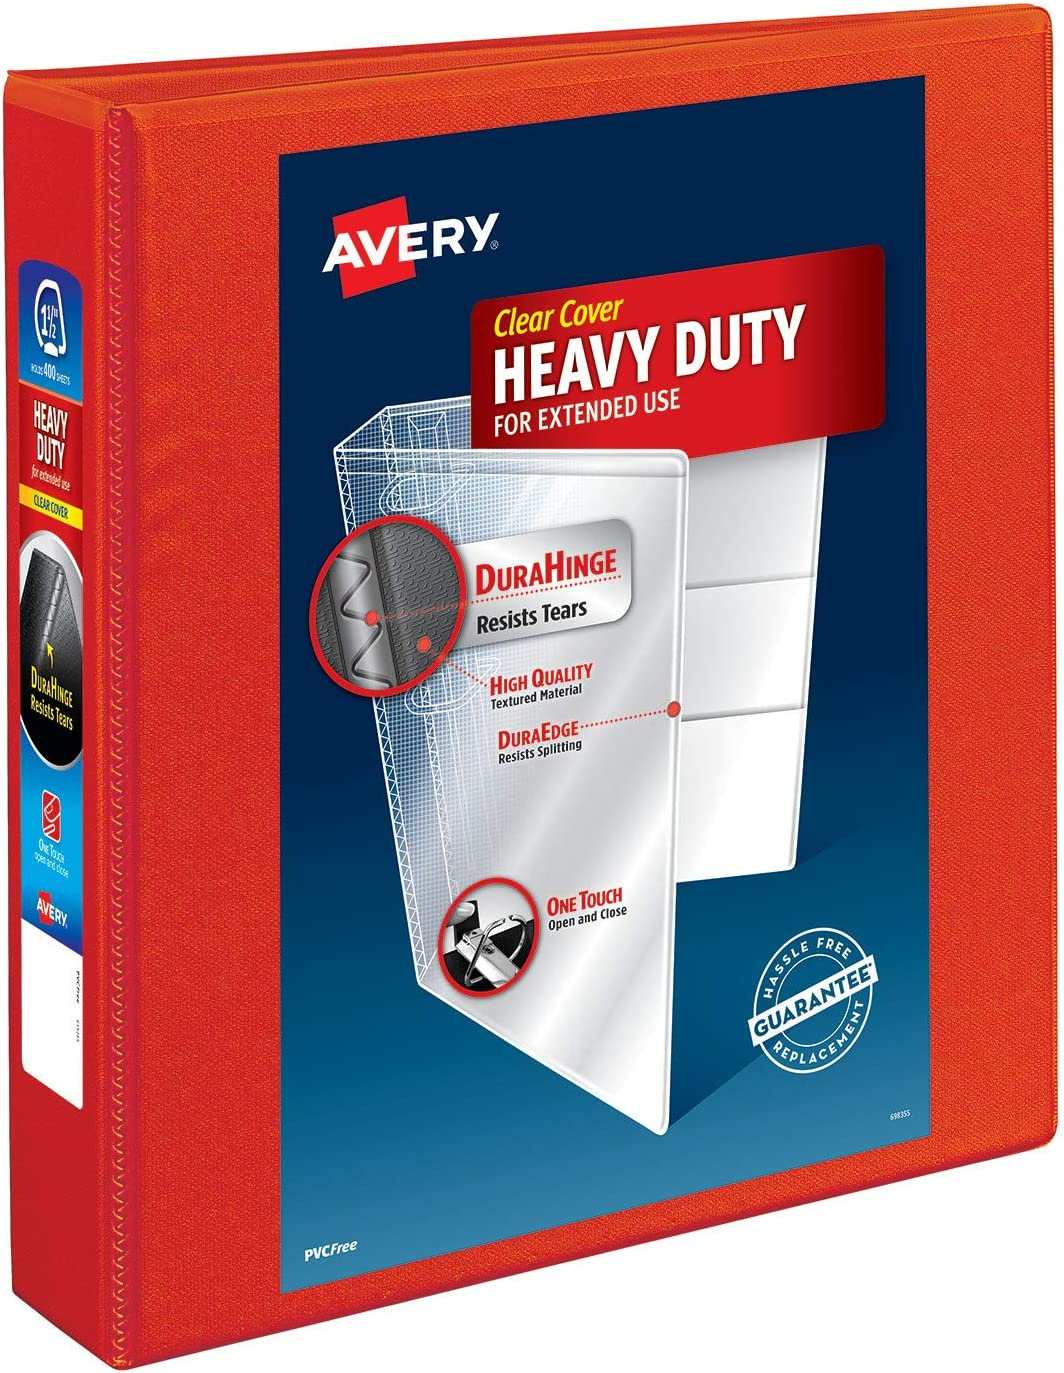 1.5One Touch EZD Ring 12 Red Binders 79171 Avery Heavy Duty View 3 Ring Binder